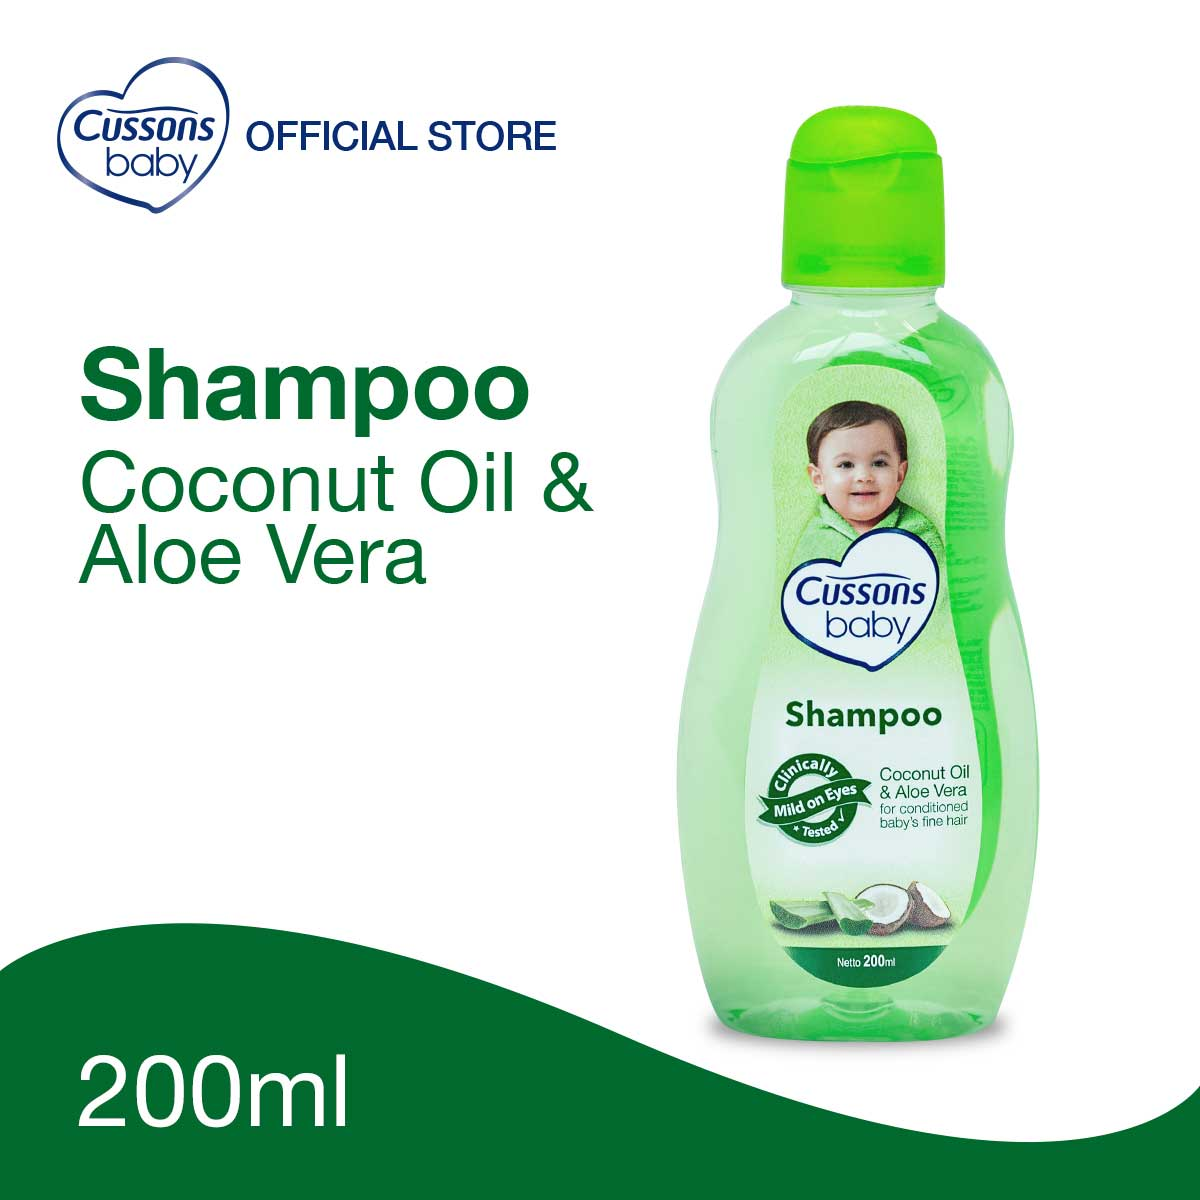 Cussons Baby Shampoo Coconut Oil & Aloe Vera 200ml